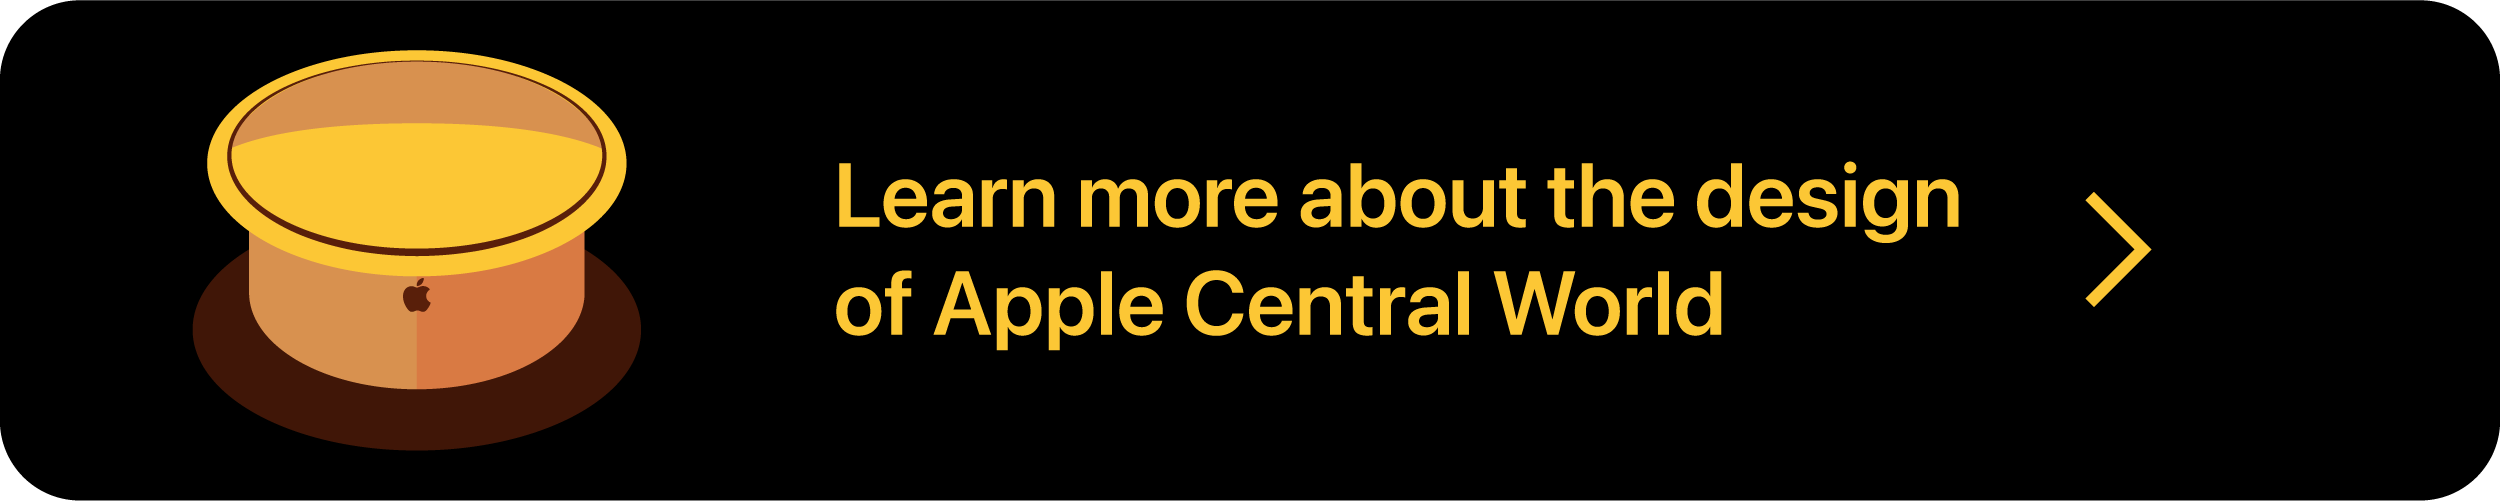 Button: Learn more about the design of Apple Central World